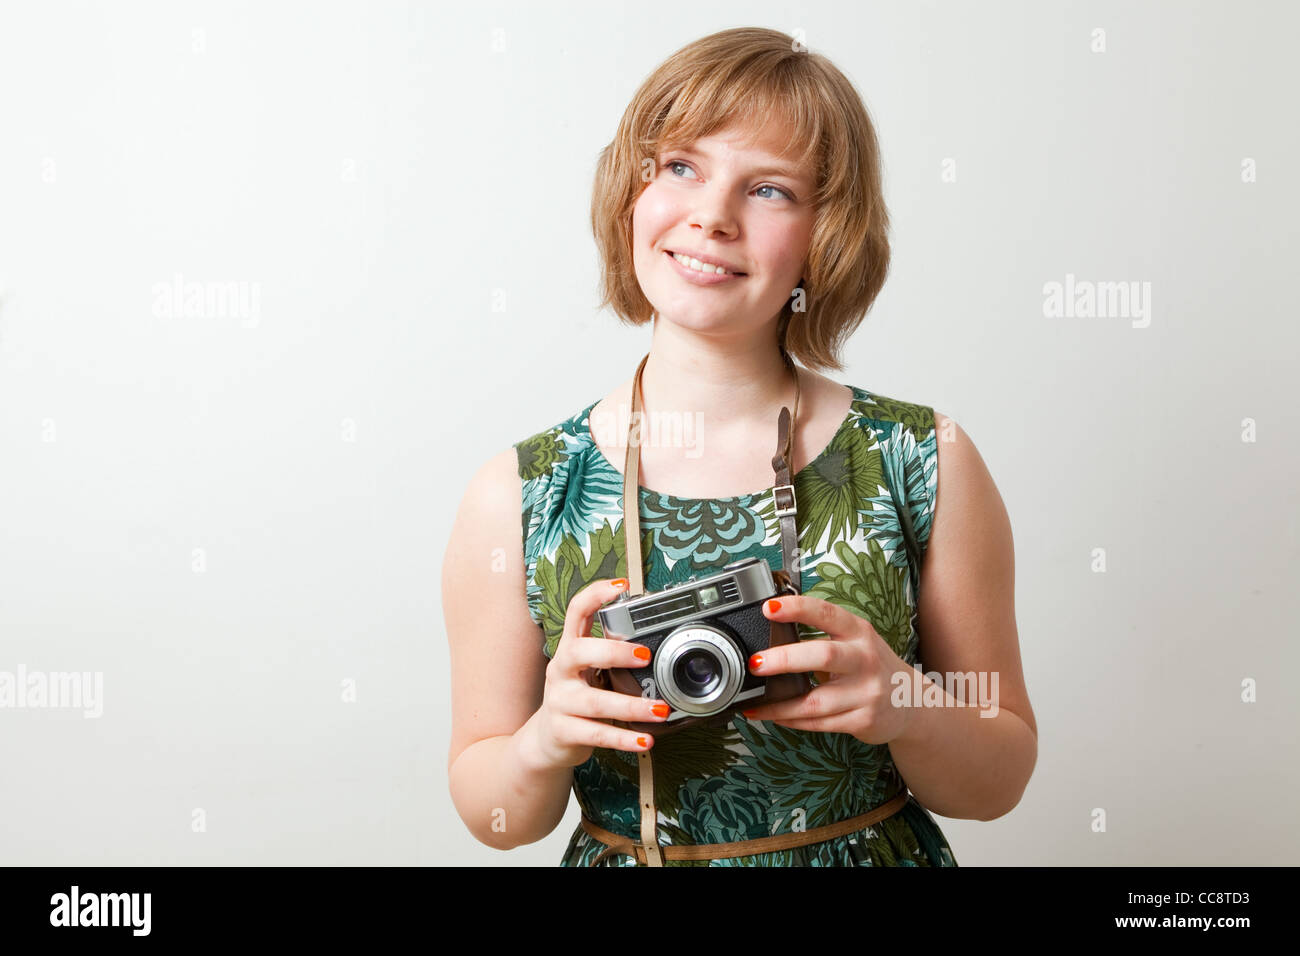 Young woman holding an old vintage camera - Stock Image